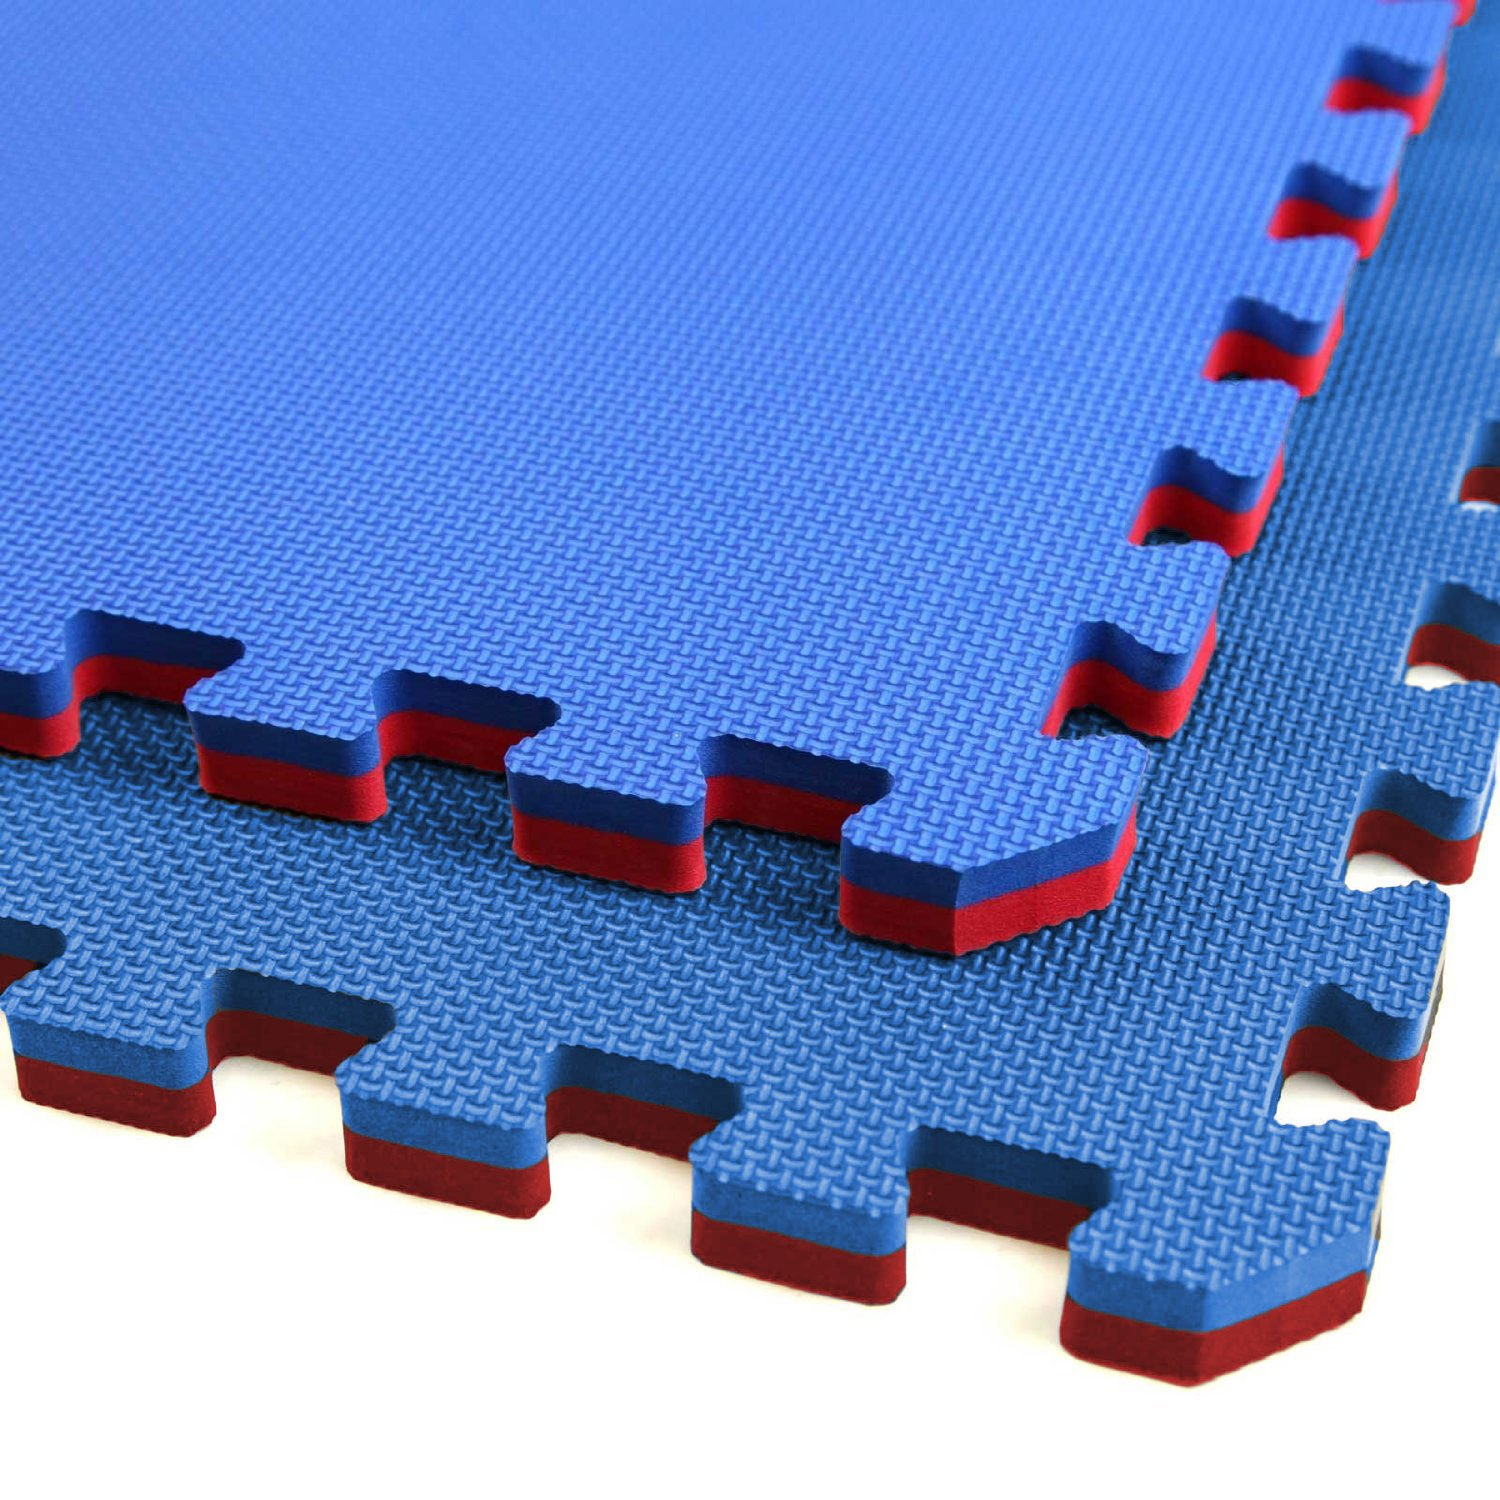 IncStores - Jumbo Soft Interlocking Foam Tiles (16 Tiles, Red/Blue) Perfect for Martial Arts, MMA, Lightweight Home Gyms, p90x, Gymnastics, Cardio, and Exercise by IncStores